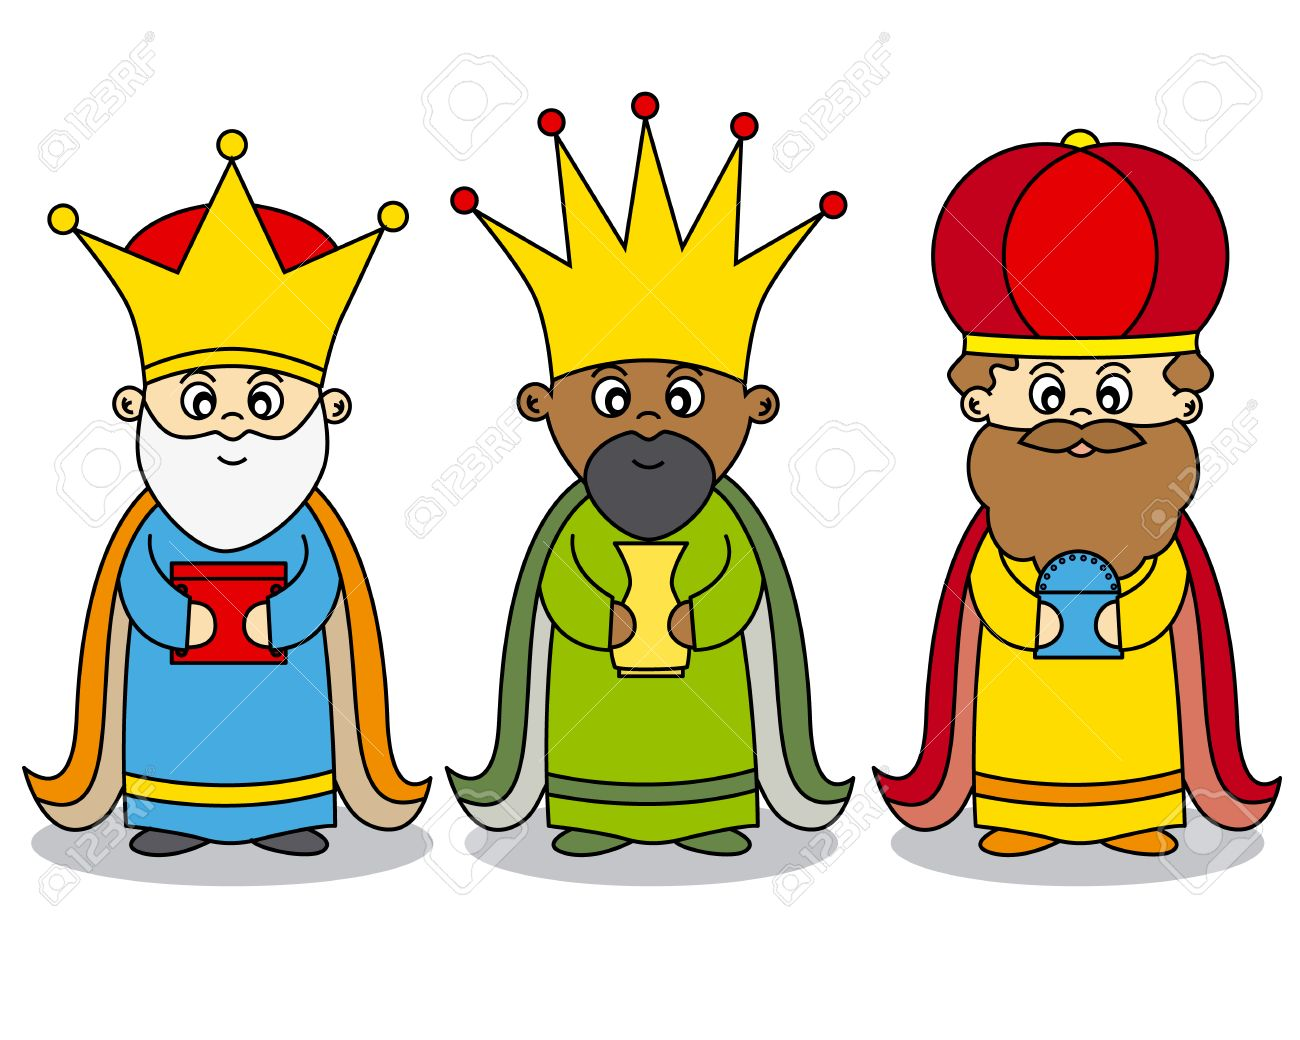 Three kings clipart 1 » Clipart Station.